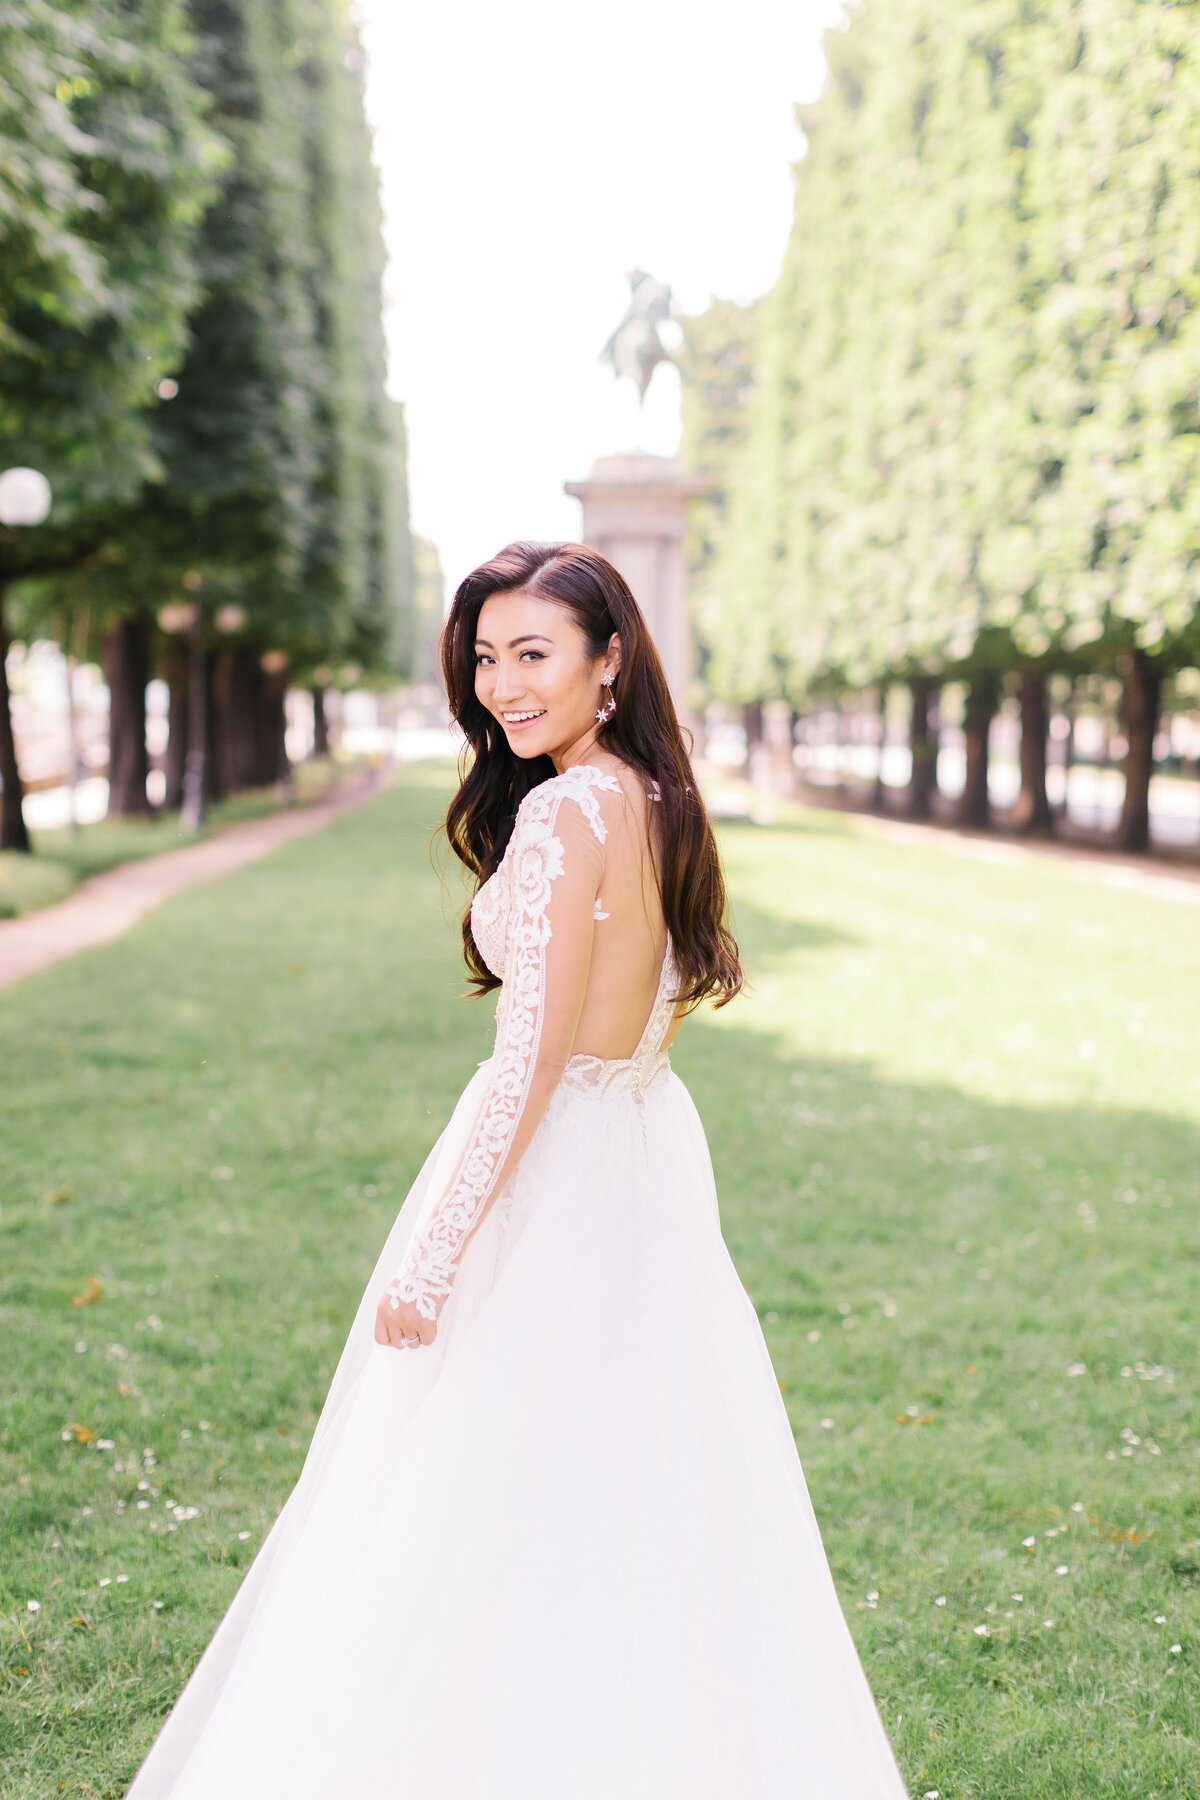 Trine_Juel_hair_makeupartist_wedding_Paris_3888